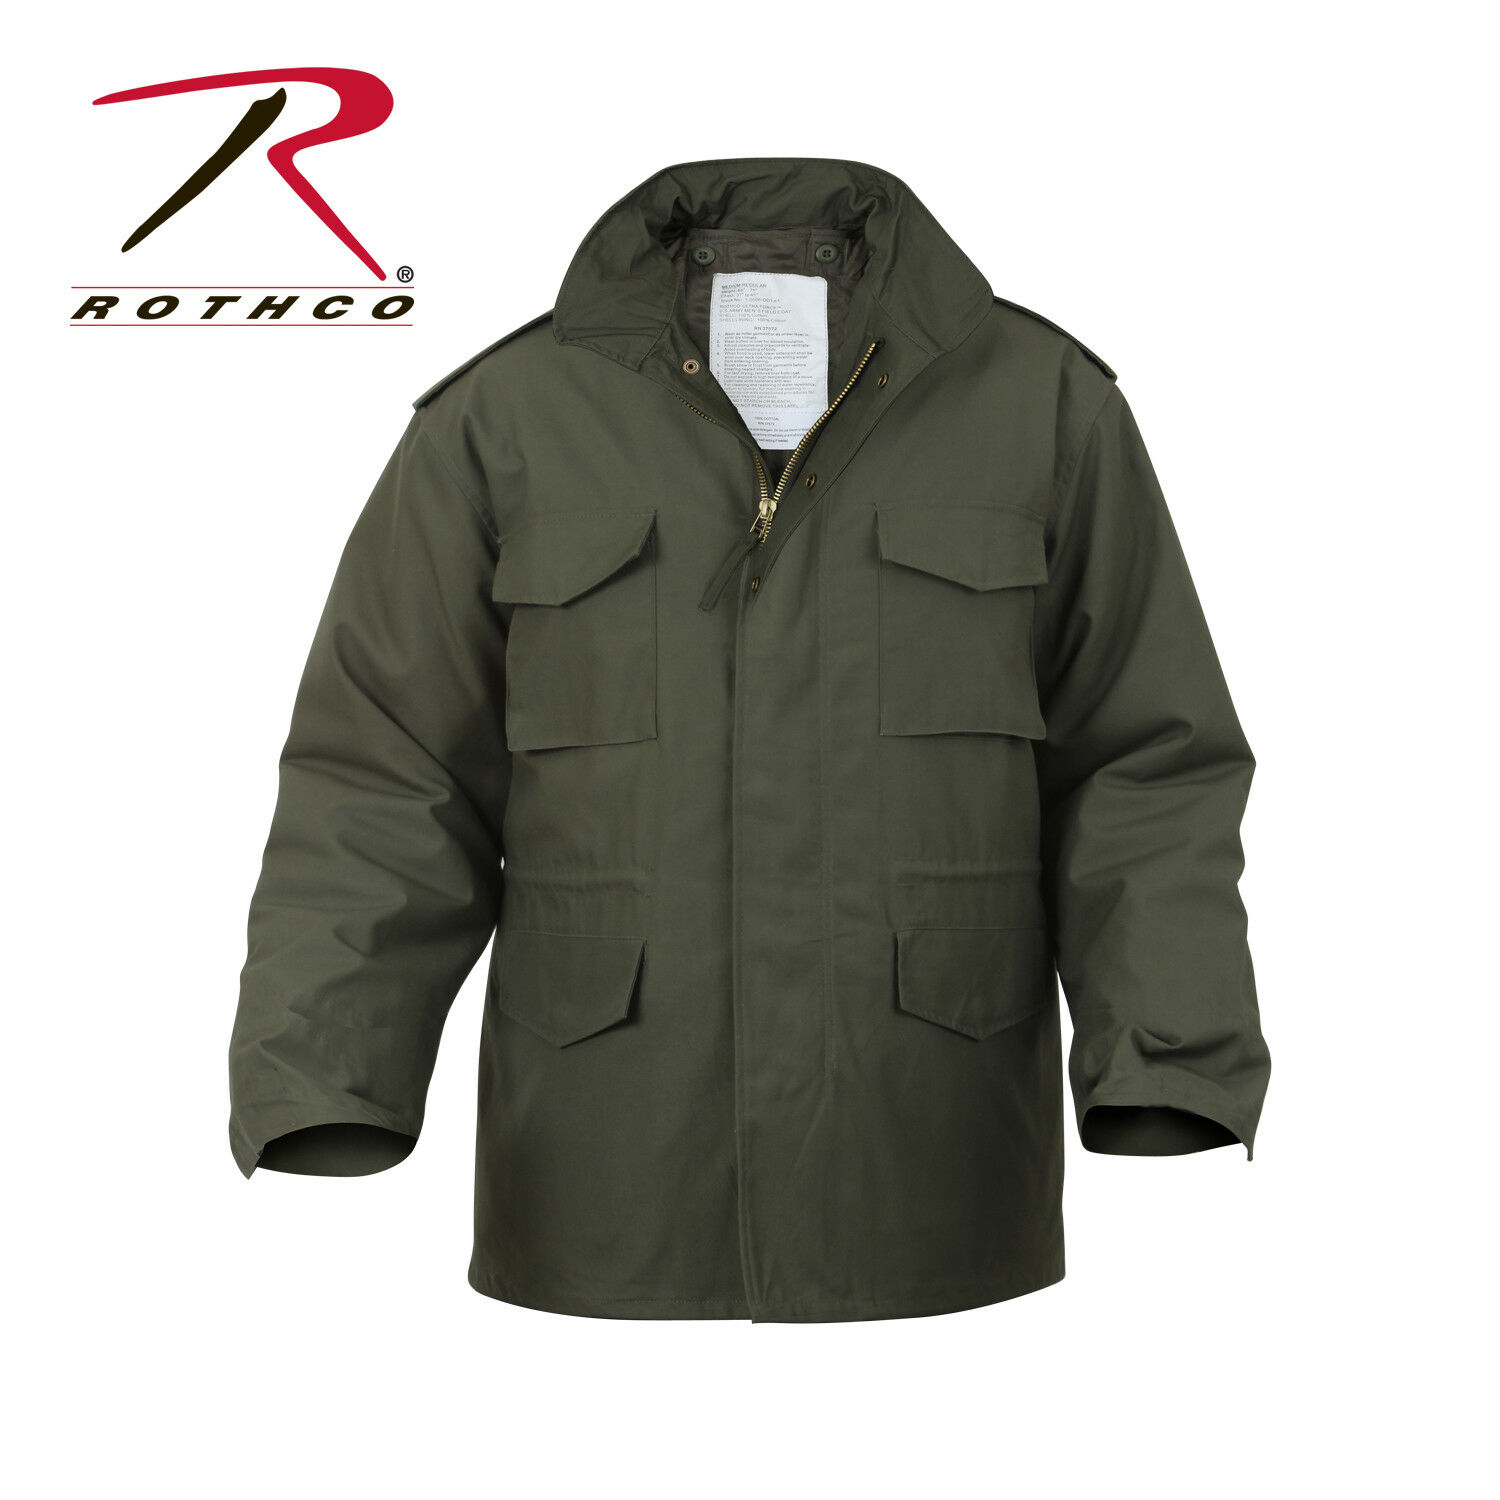 redhco M65 Field Coat with removeable quilted liner OLIVE DRAB